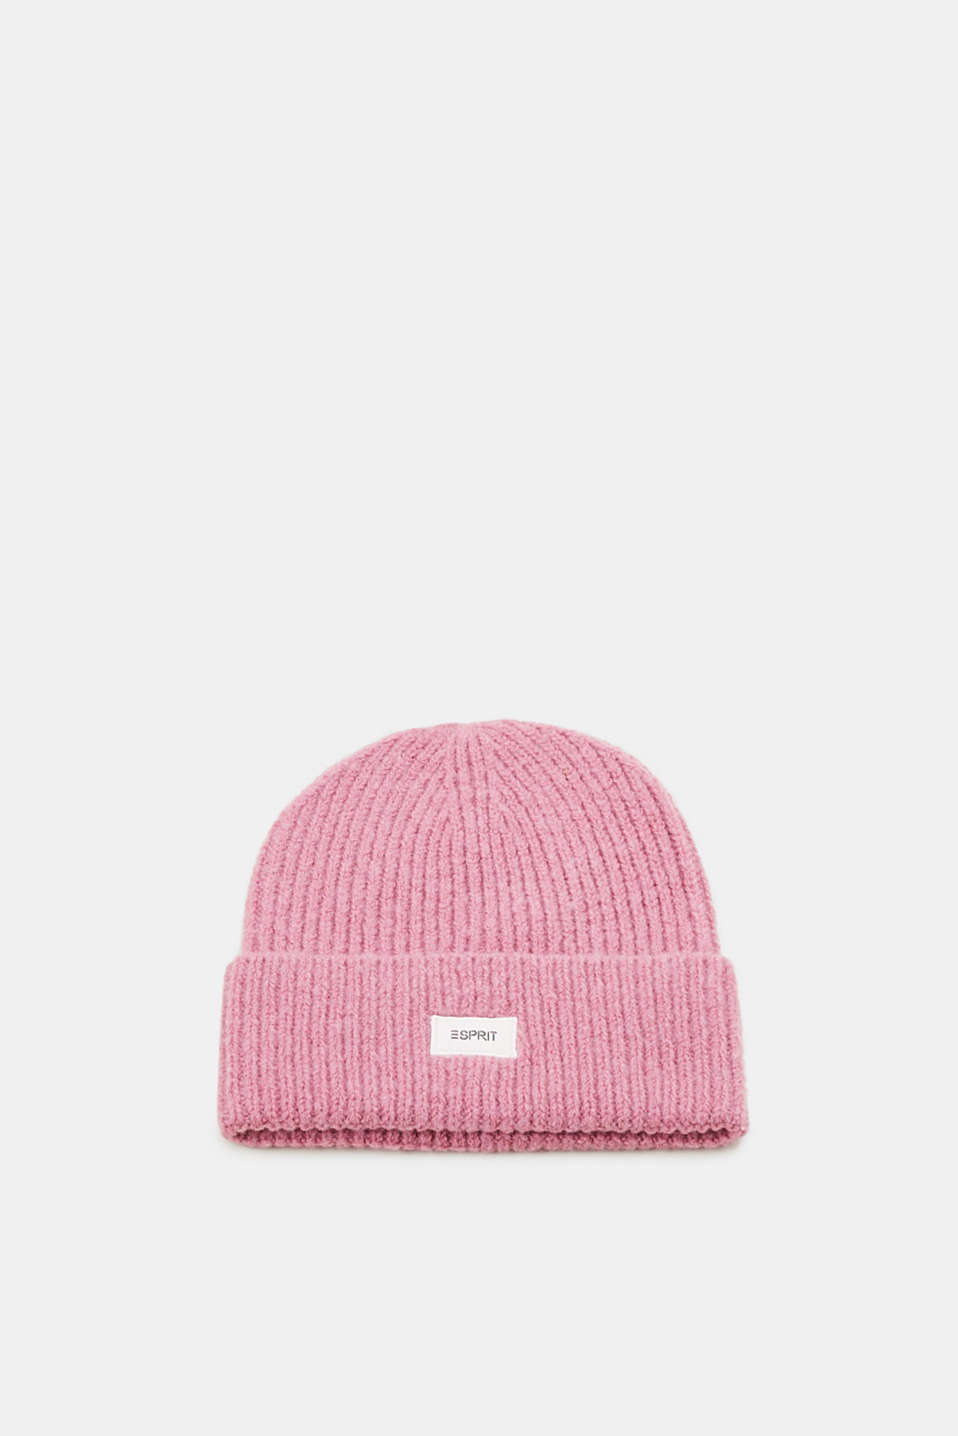 Esprit - Wool blend: rib knit hat